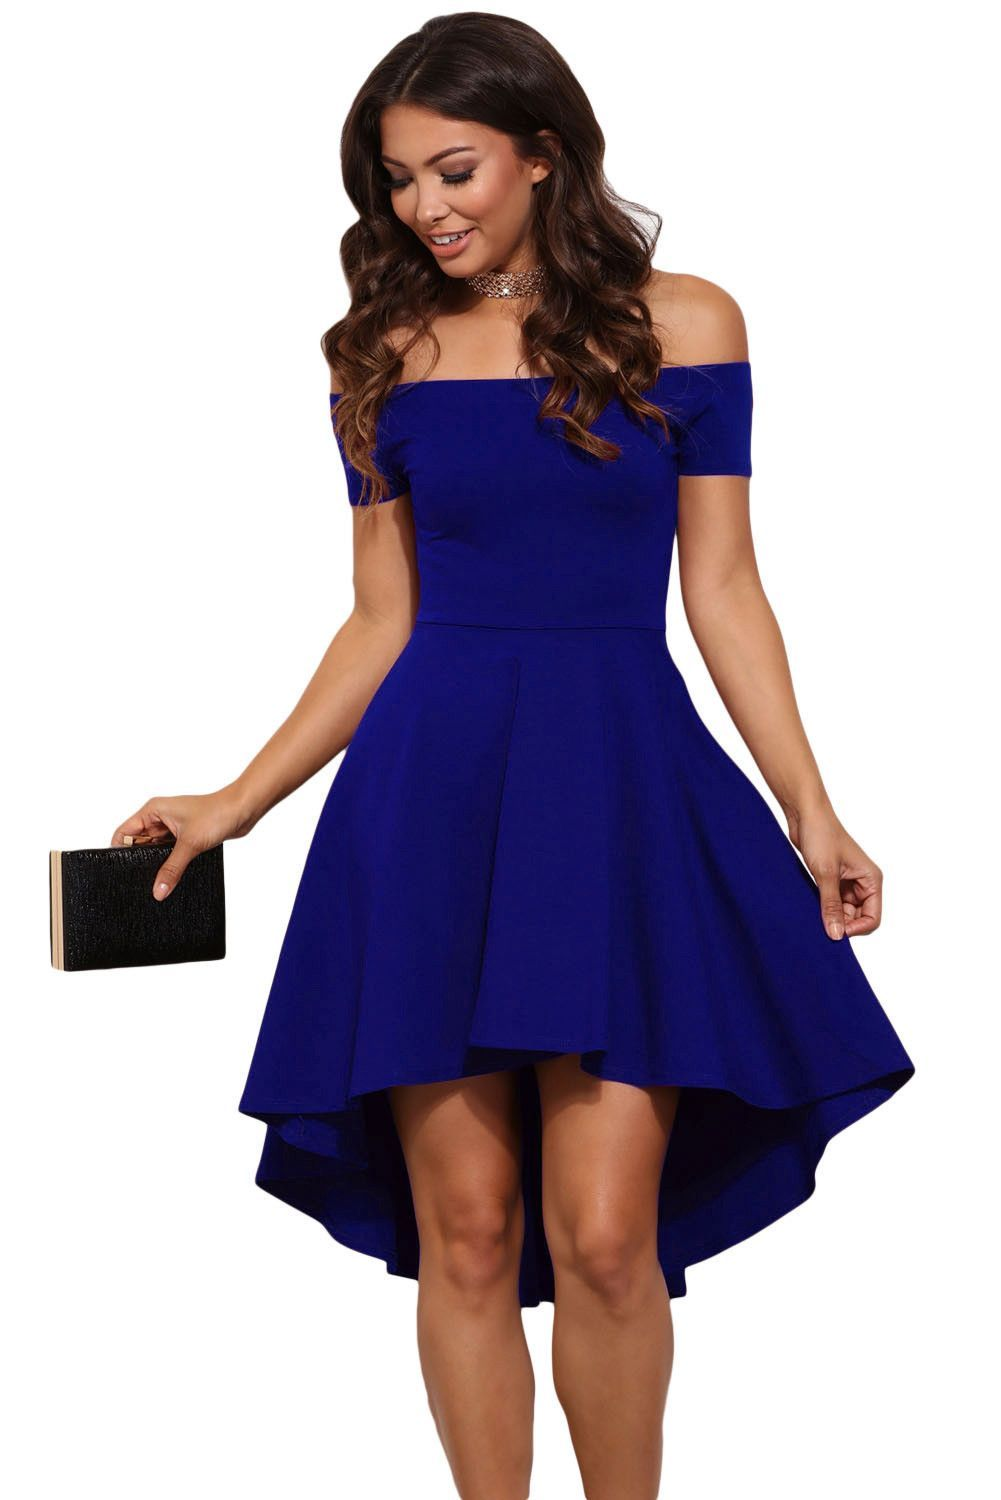 7927ba233c Blue Shoulder Off All The Rage Fit and Flare Skater Dress